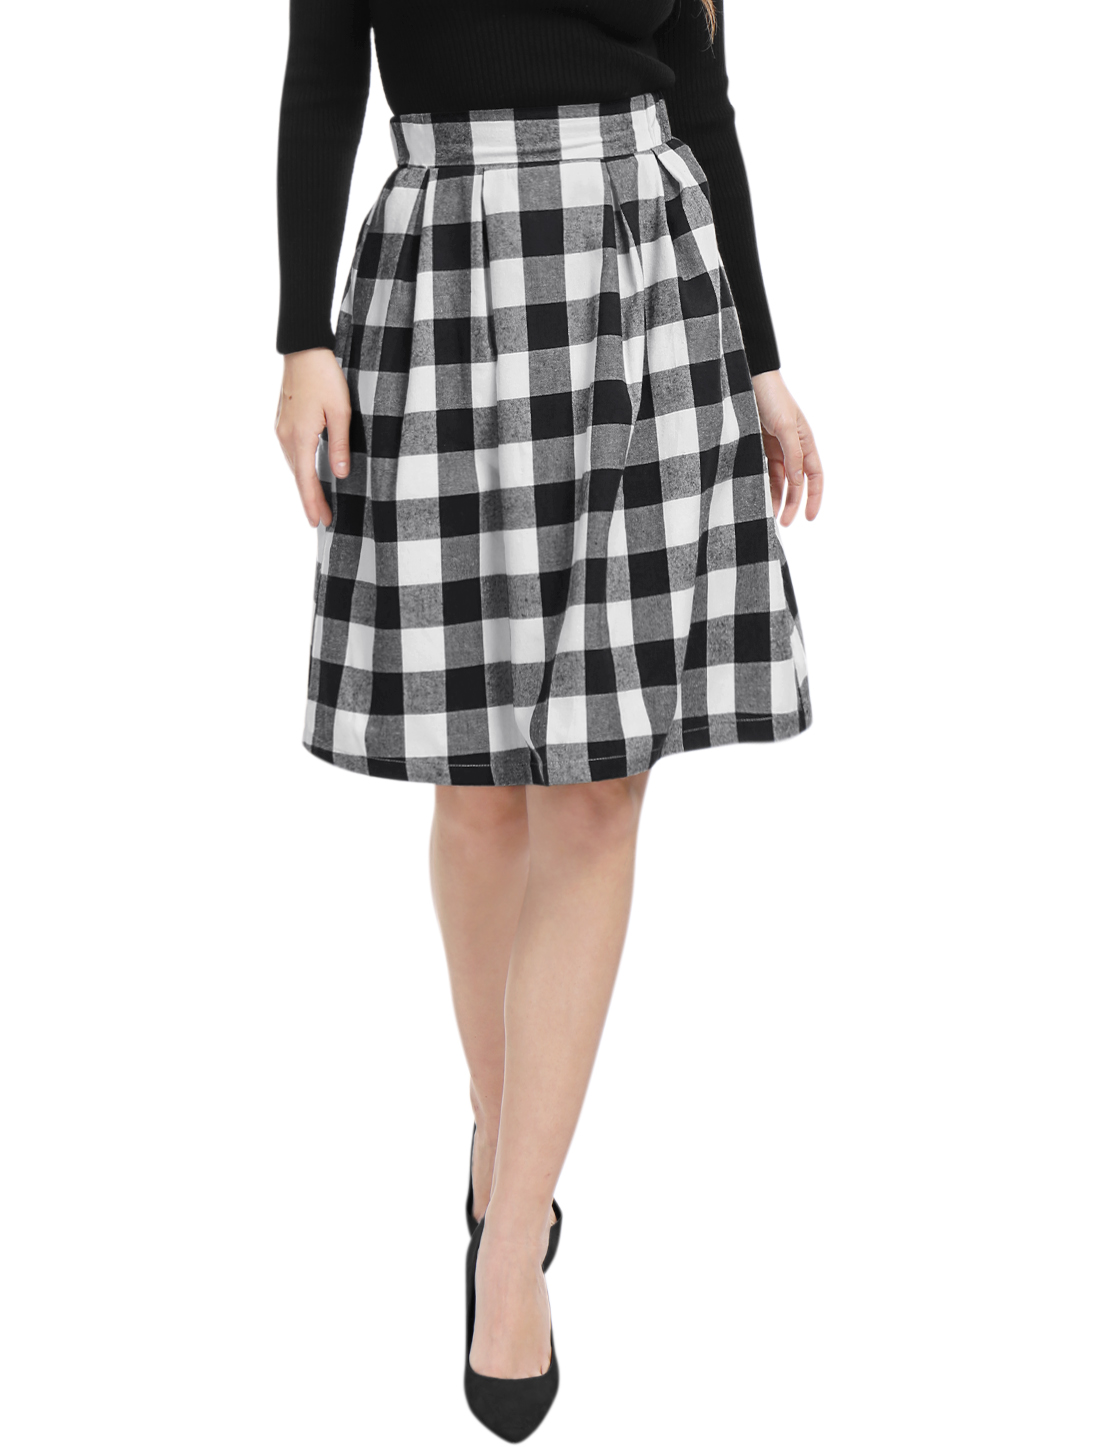 Women Inverted Pleats A-line Check Print Knee Length Skirt Black XL